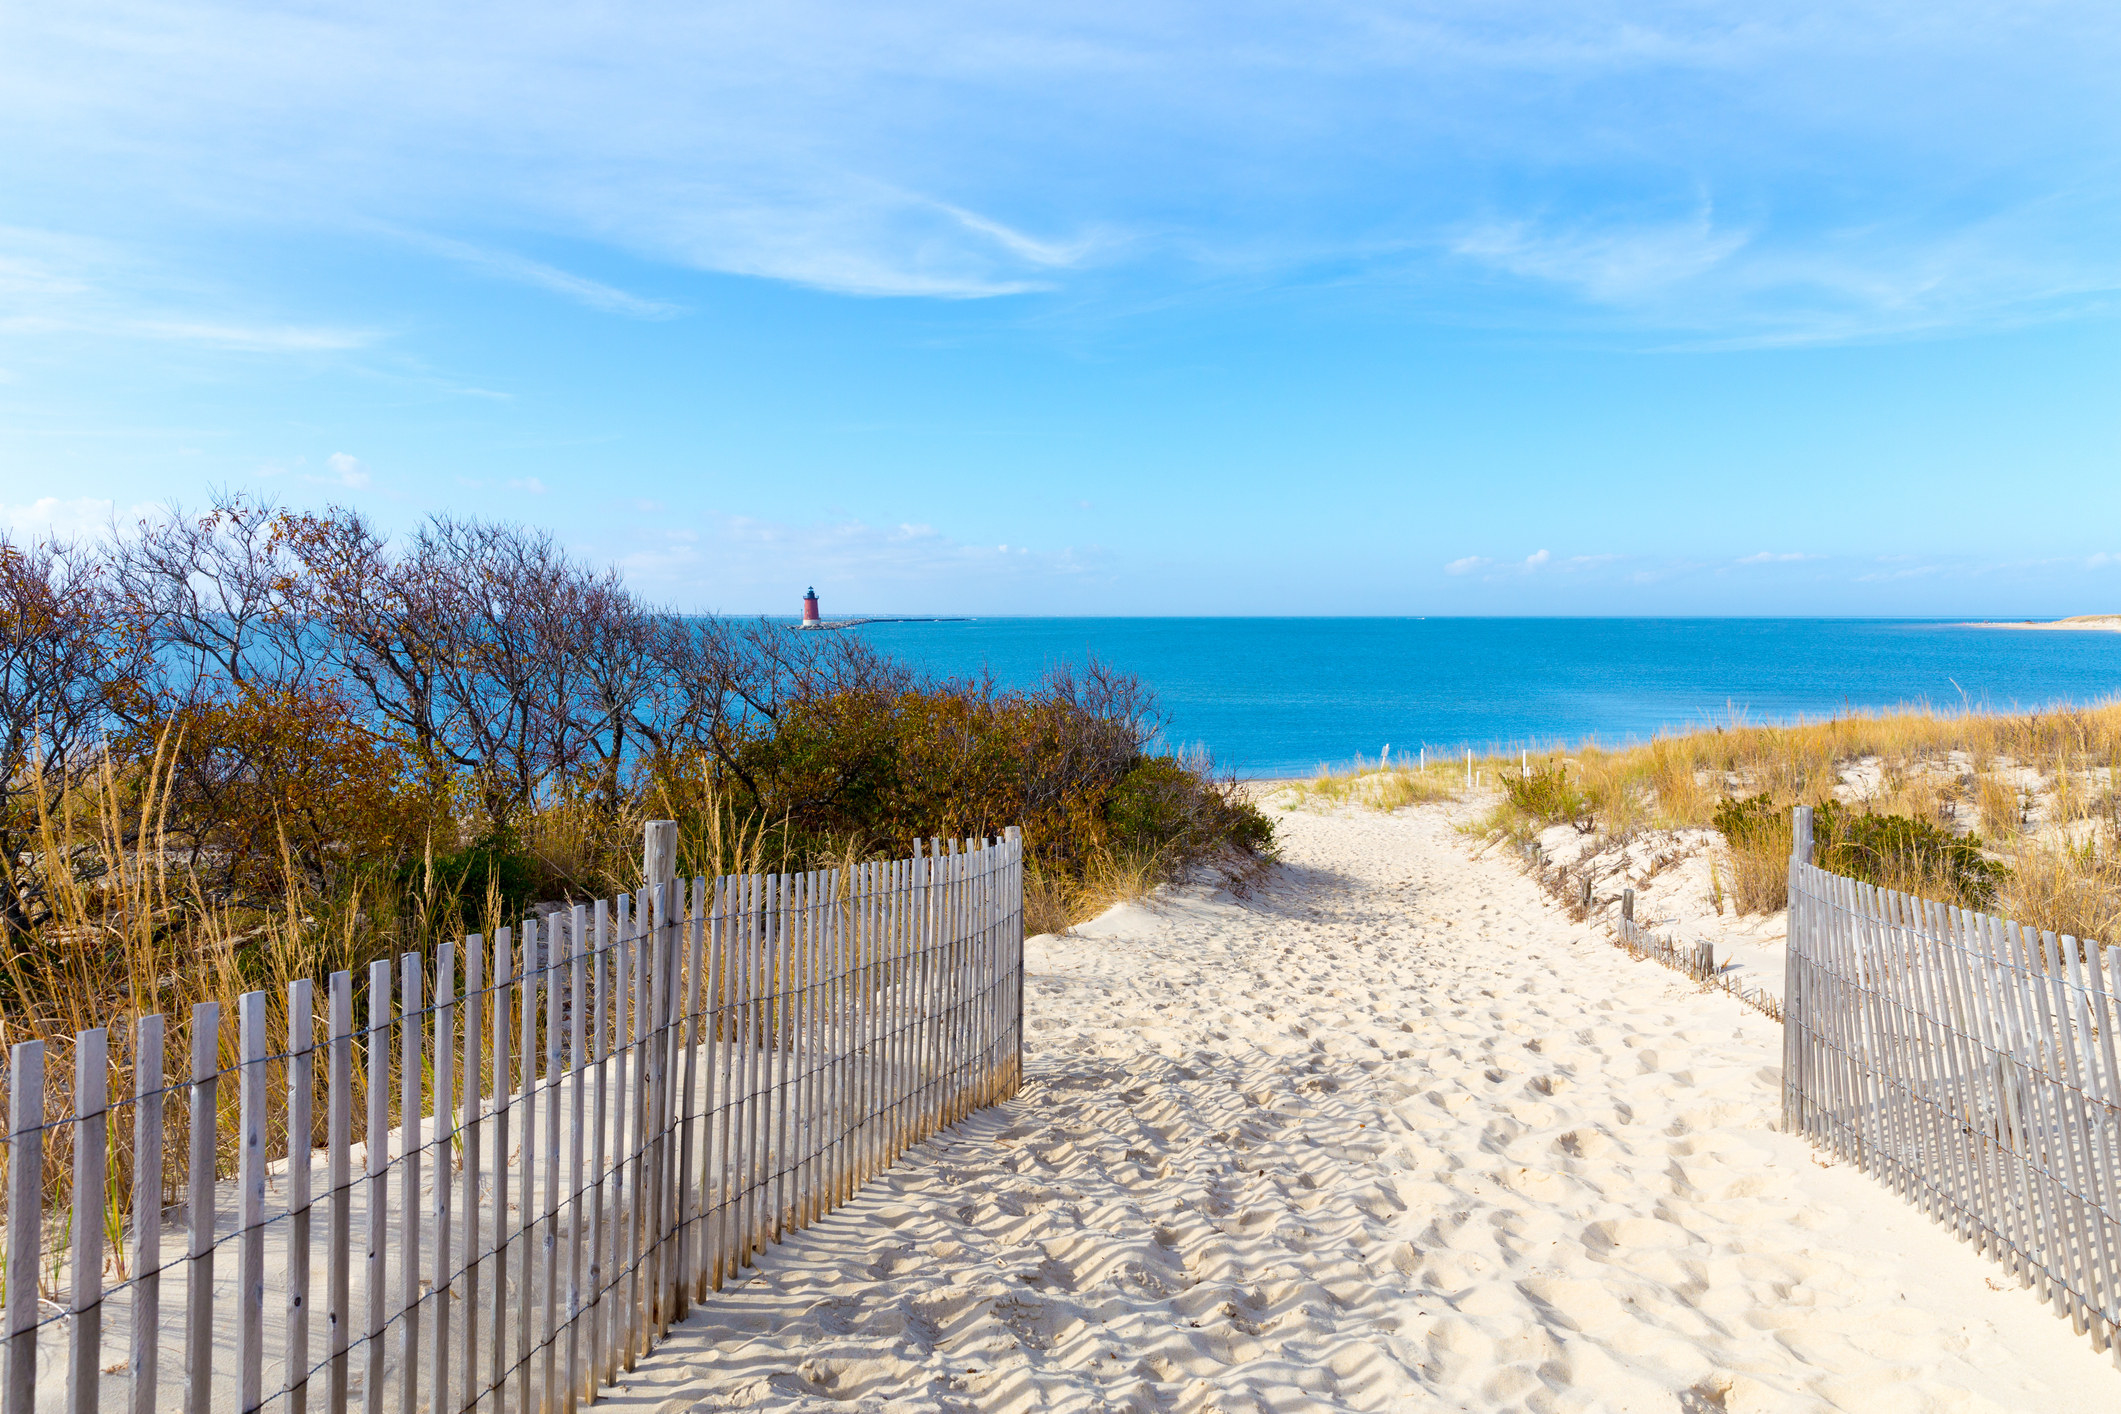 A sandy path leads to a view of the ocean and clear skies above